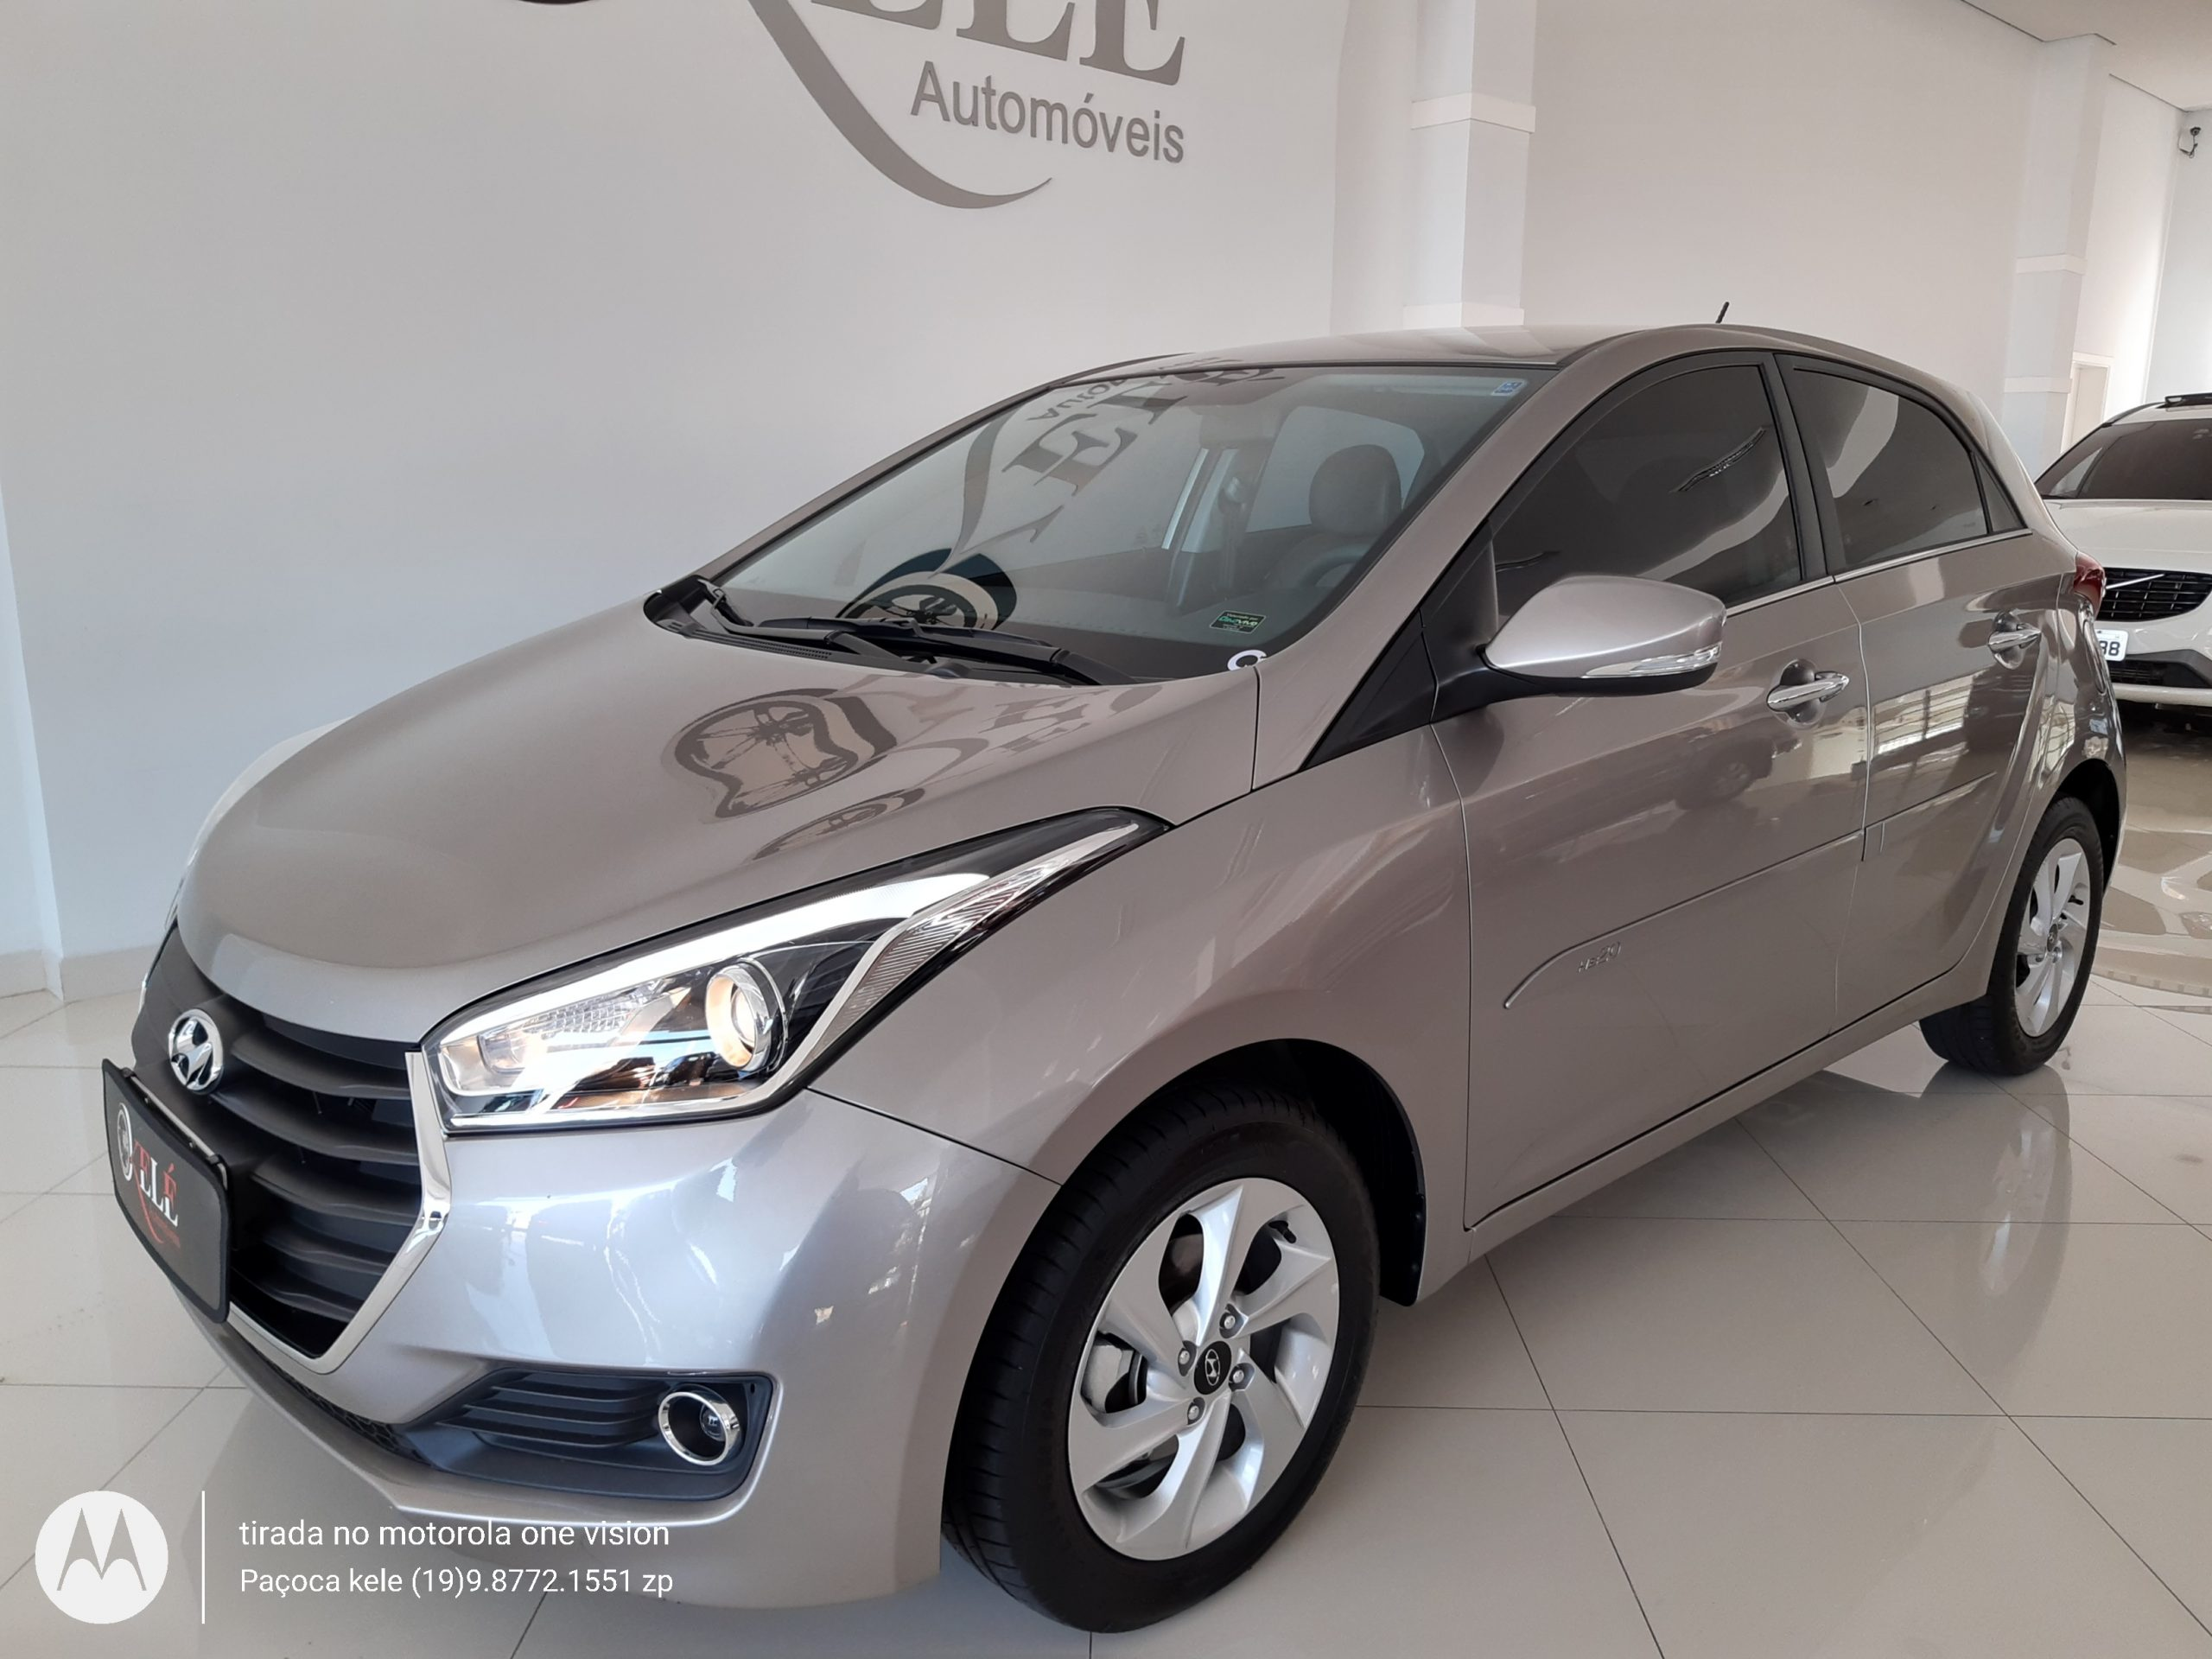 HYUNDAI HB20 PREMIUM 1.6 AT